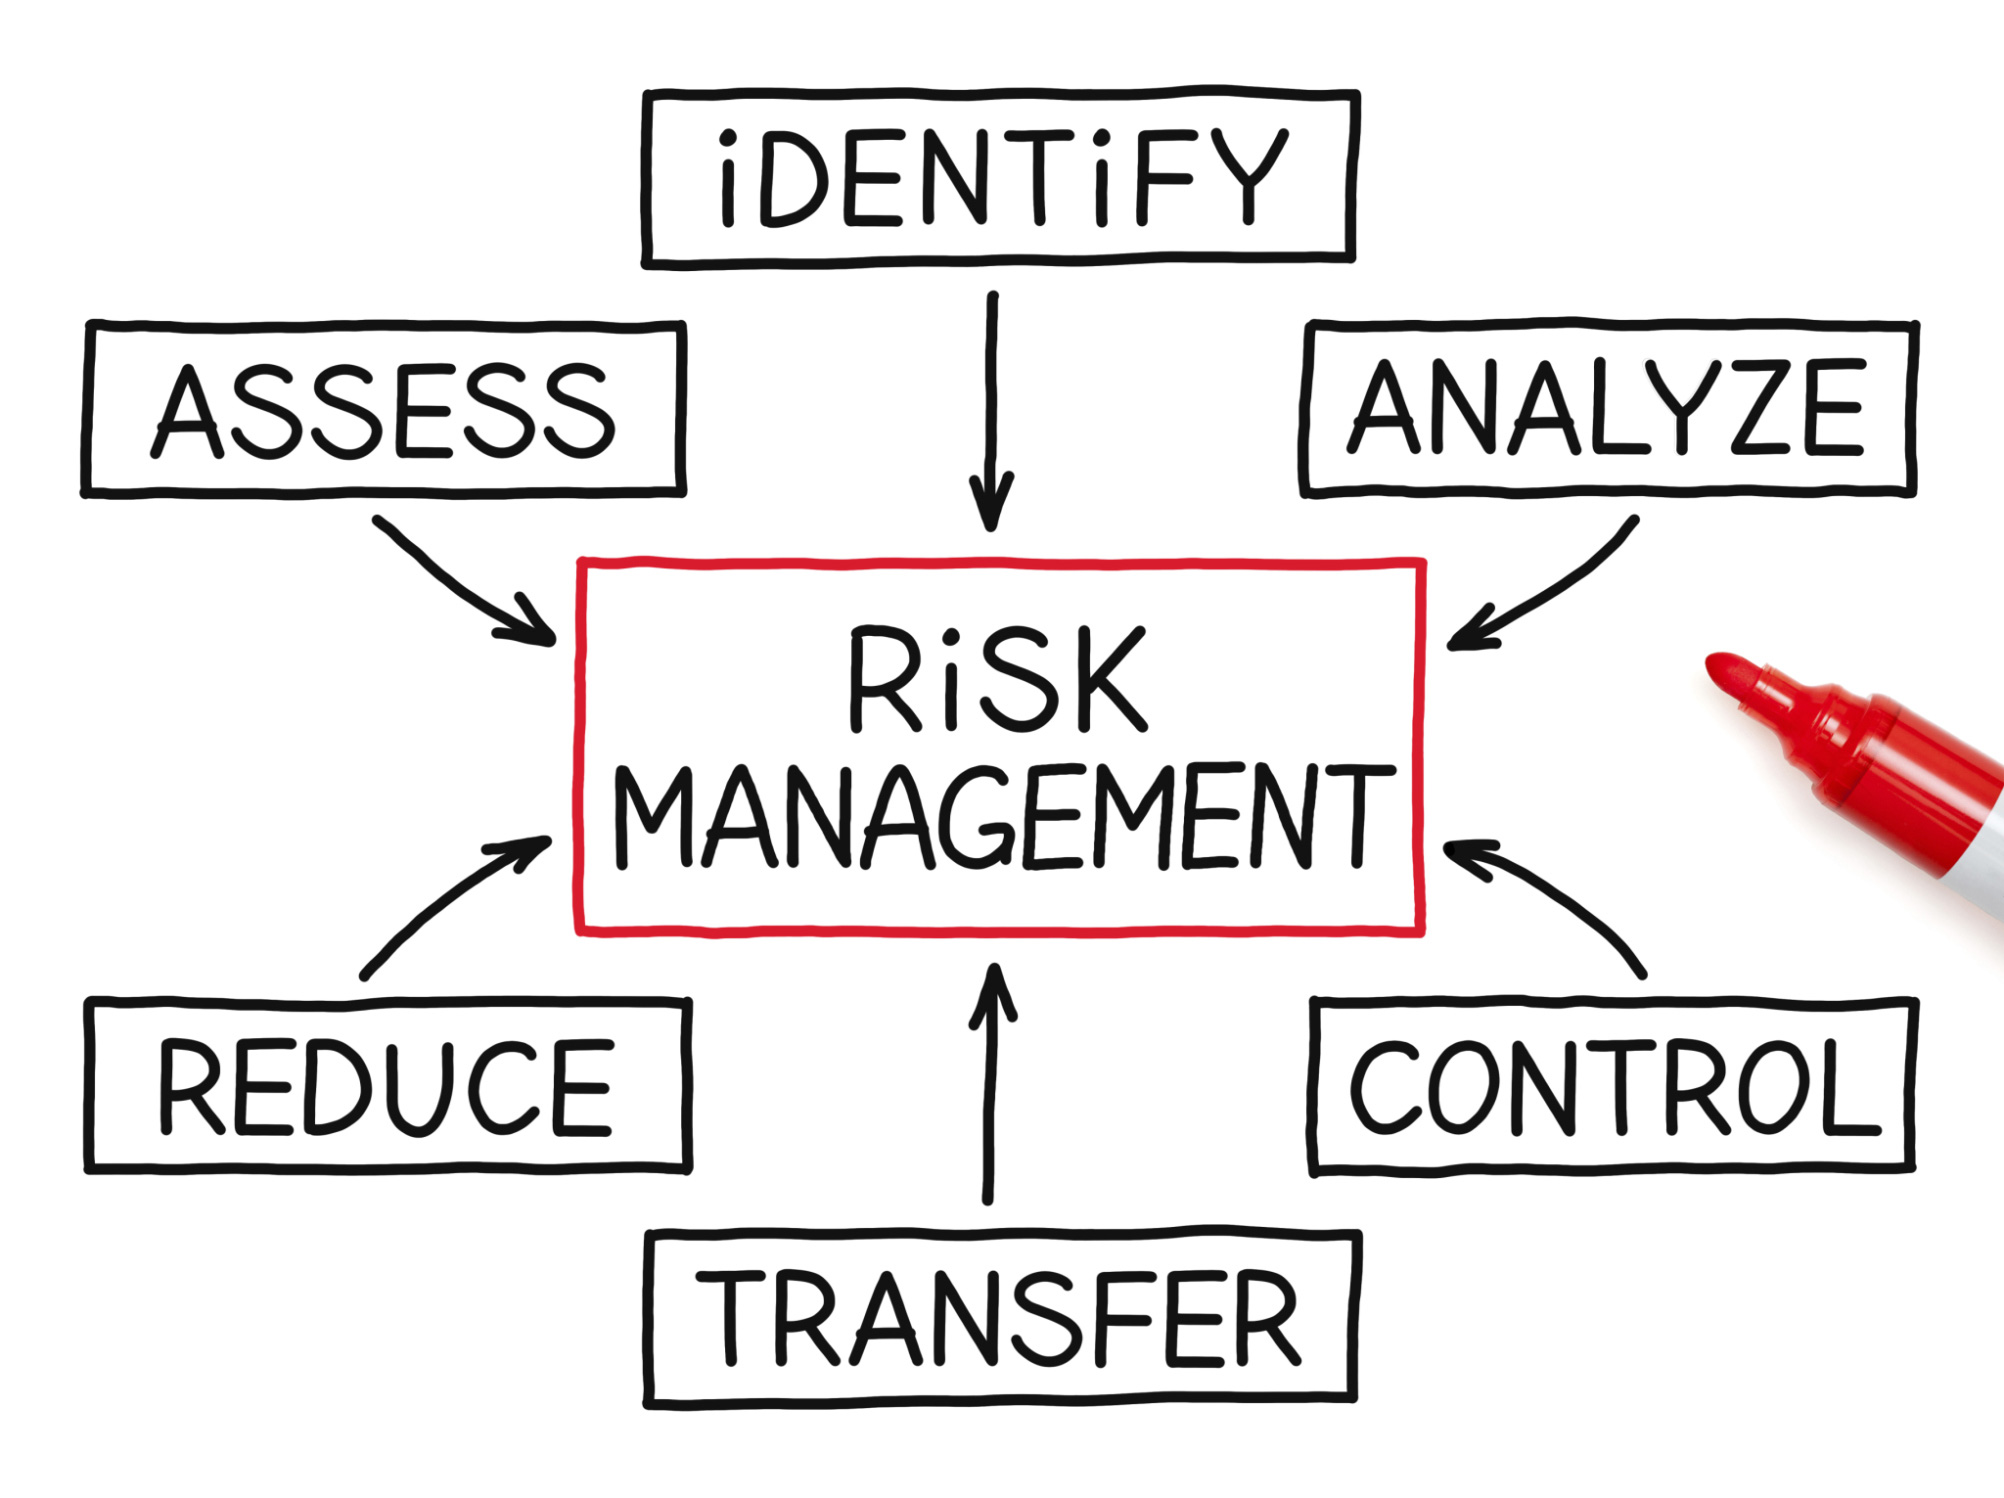 Risk Management and Insurance currency grading companies